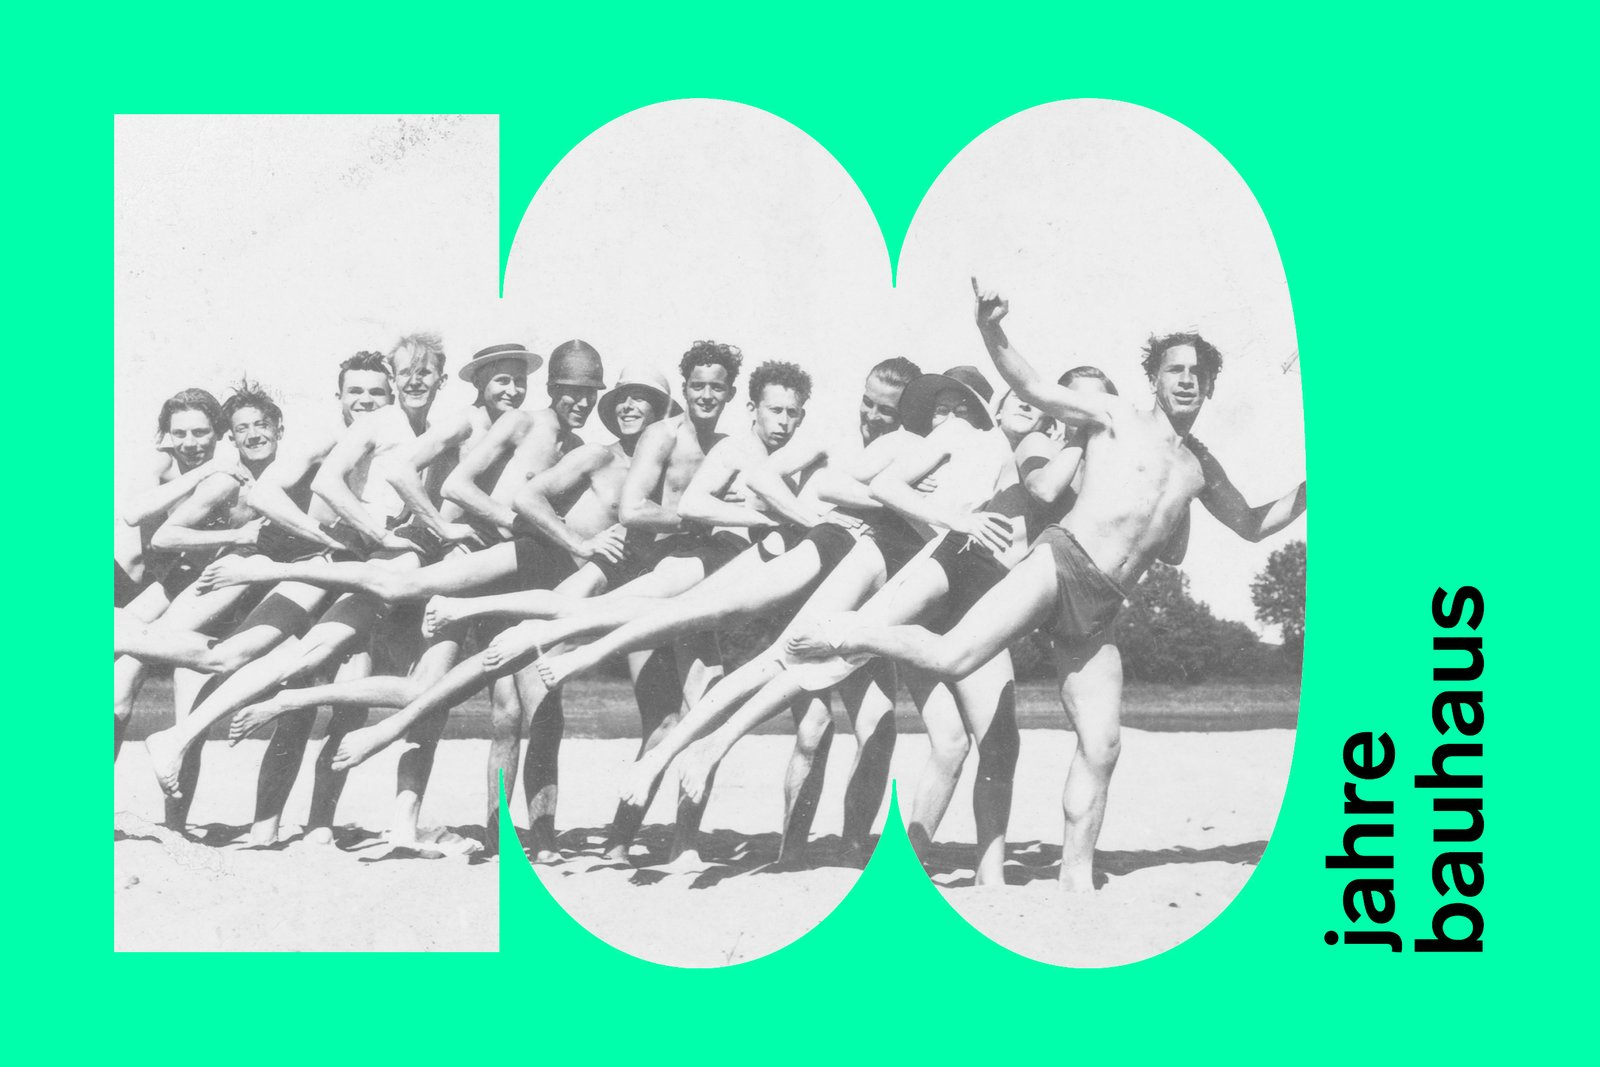 Students and faculty of the Bauhaus on the beach, 1926-1927. Irene Bayer or Marianne Brandt, 1926-27. Bauhaus Archive Berlin.  Photo 4 of 10 in 100 Years of Bauhaus: What You Should Know About This Milestone Movement